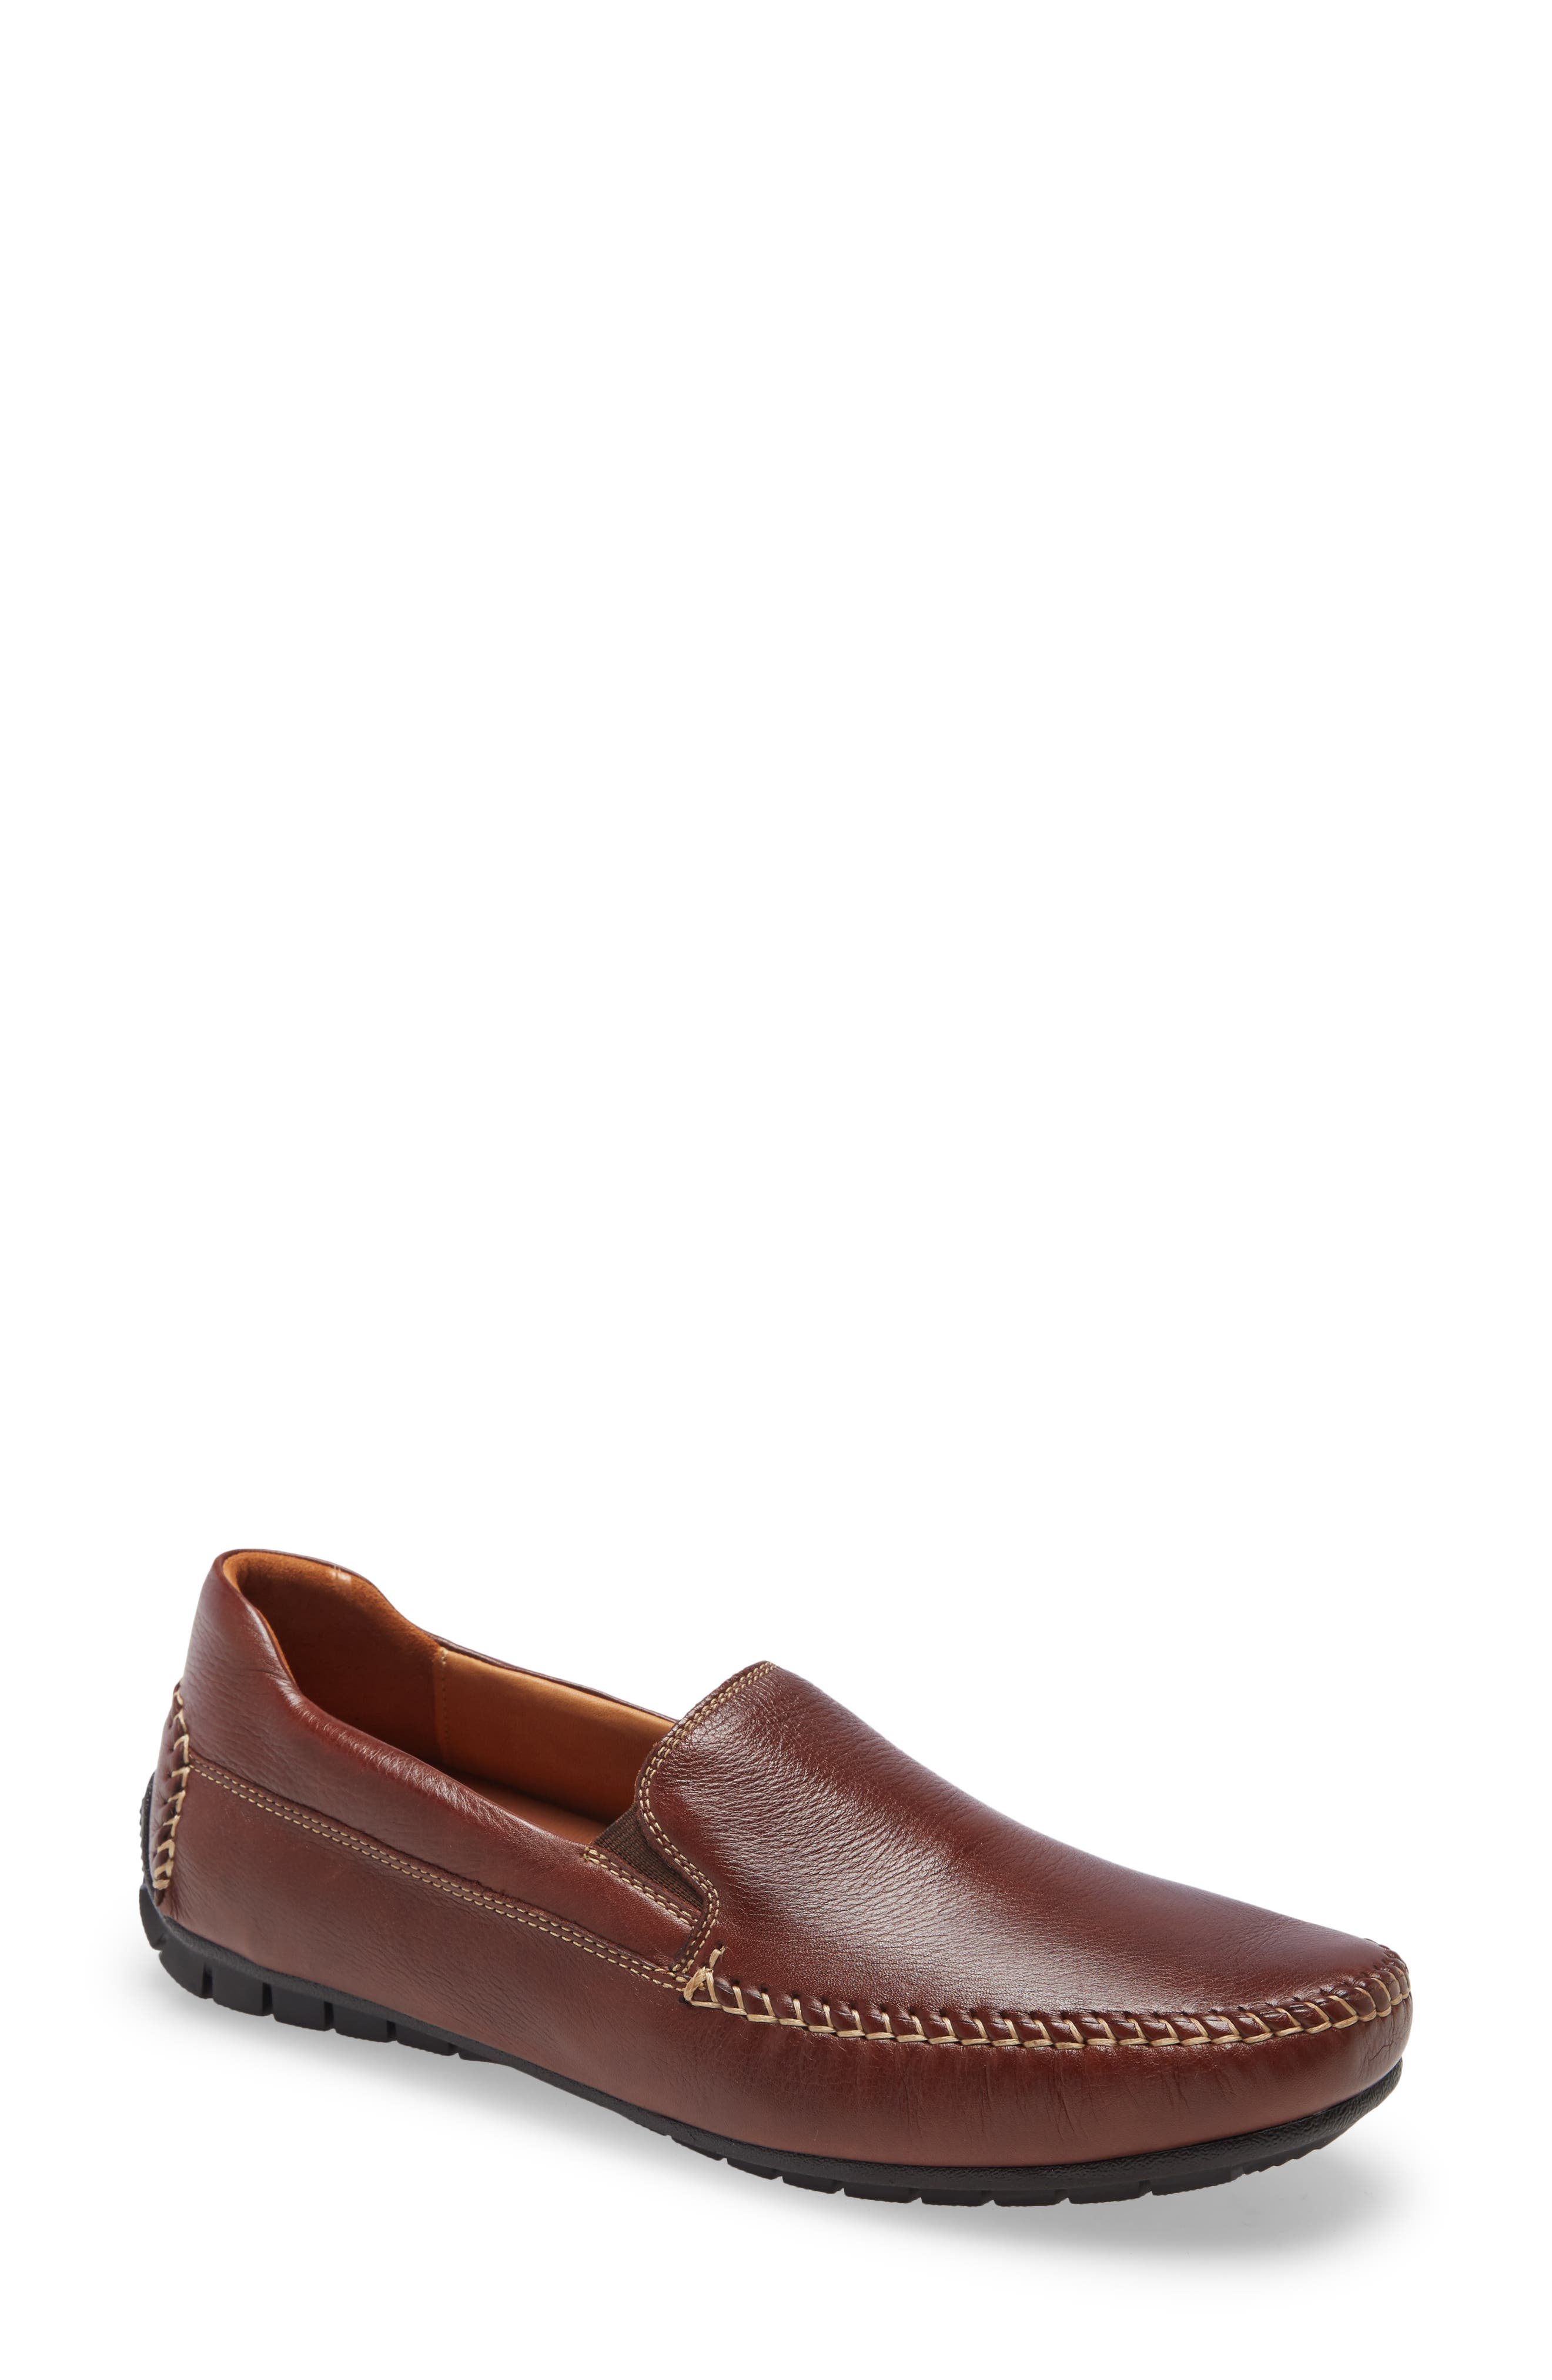 Cort Whipstitch Driving Loafer